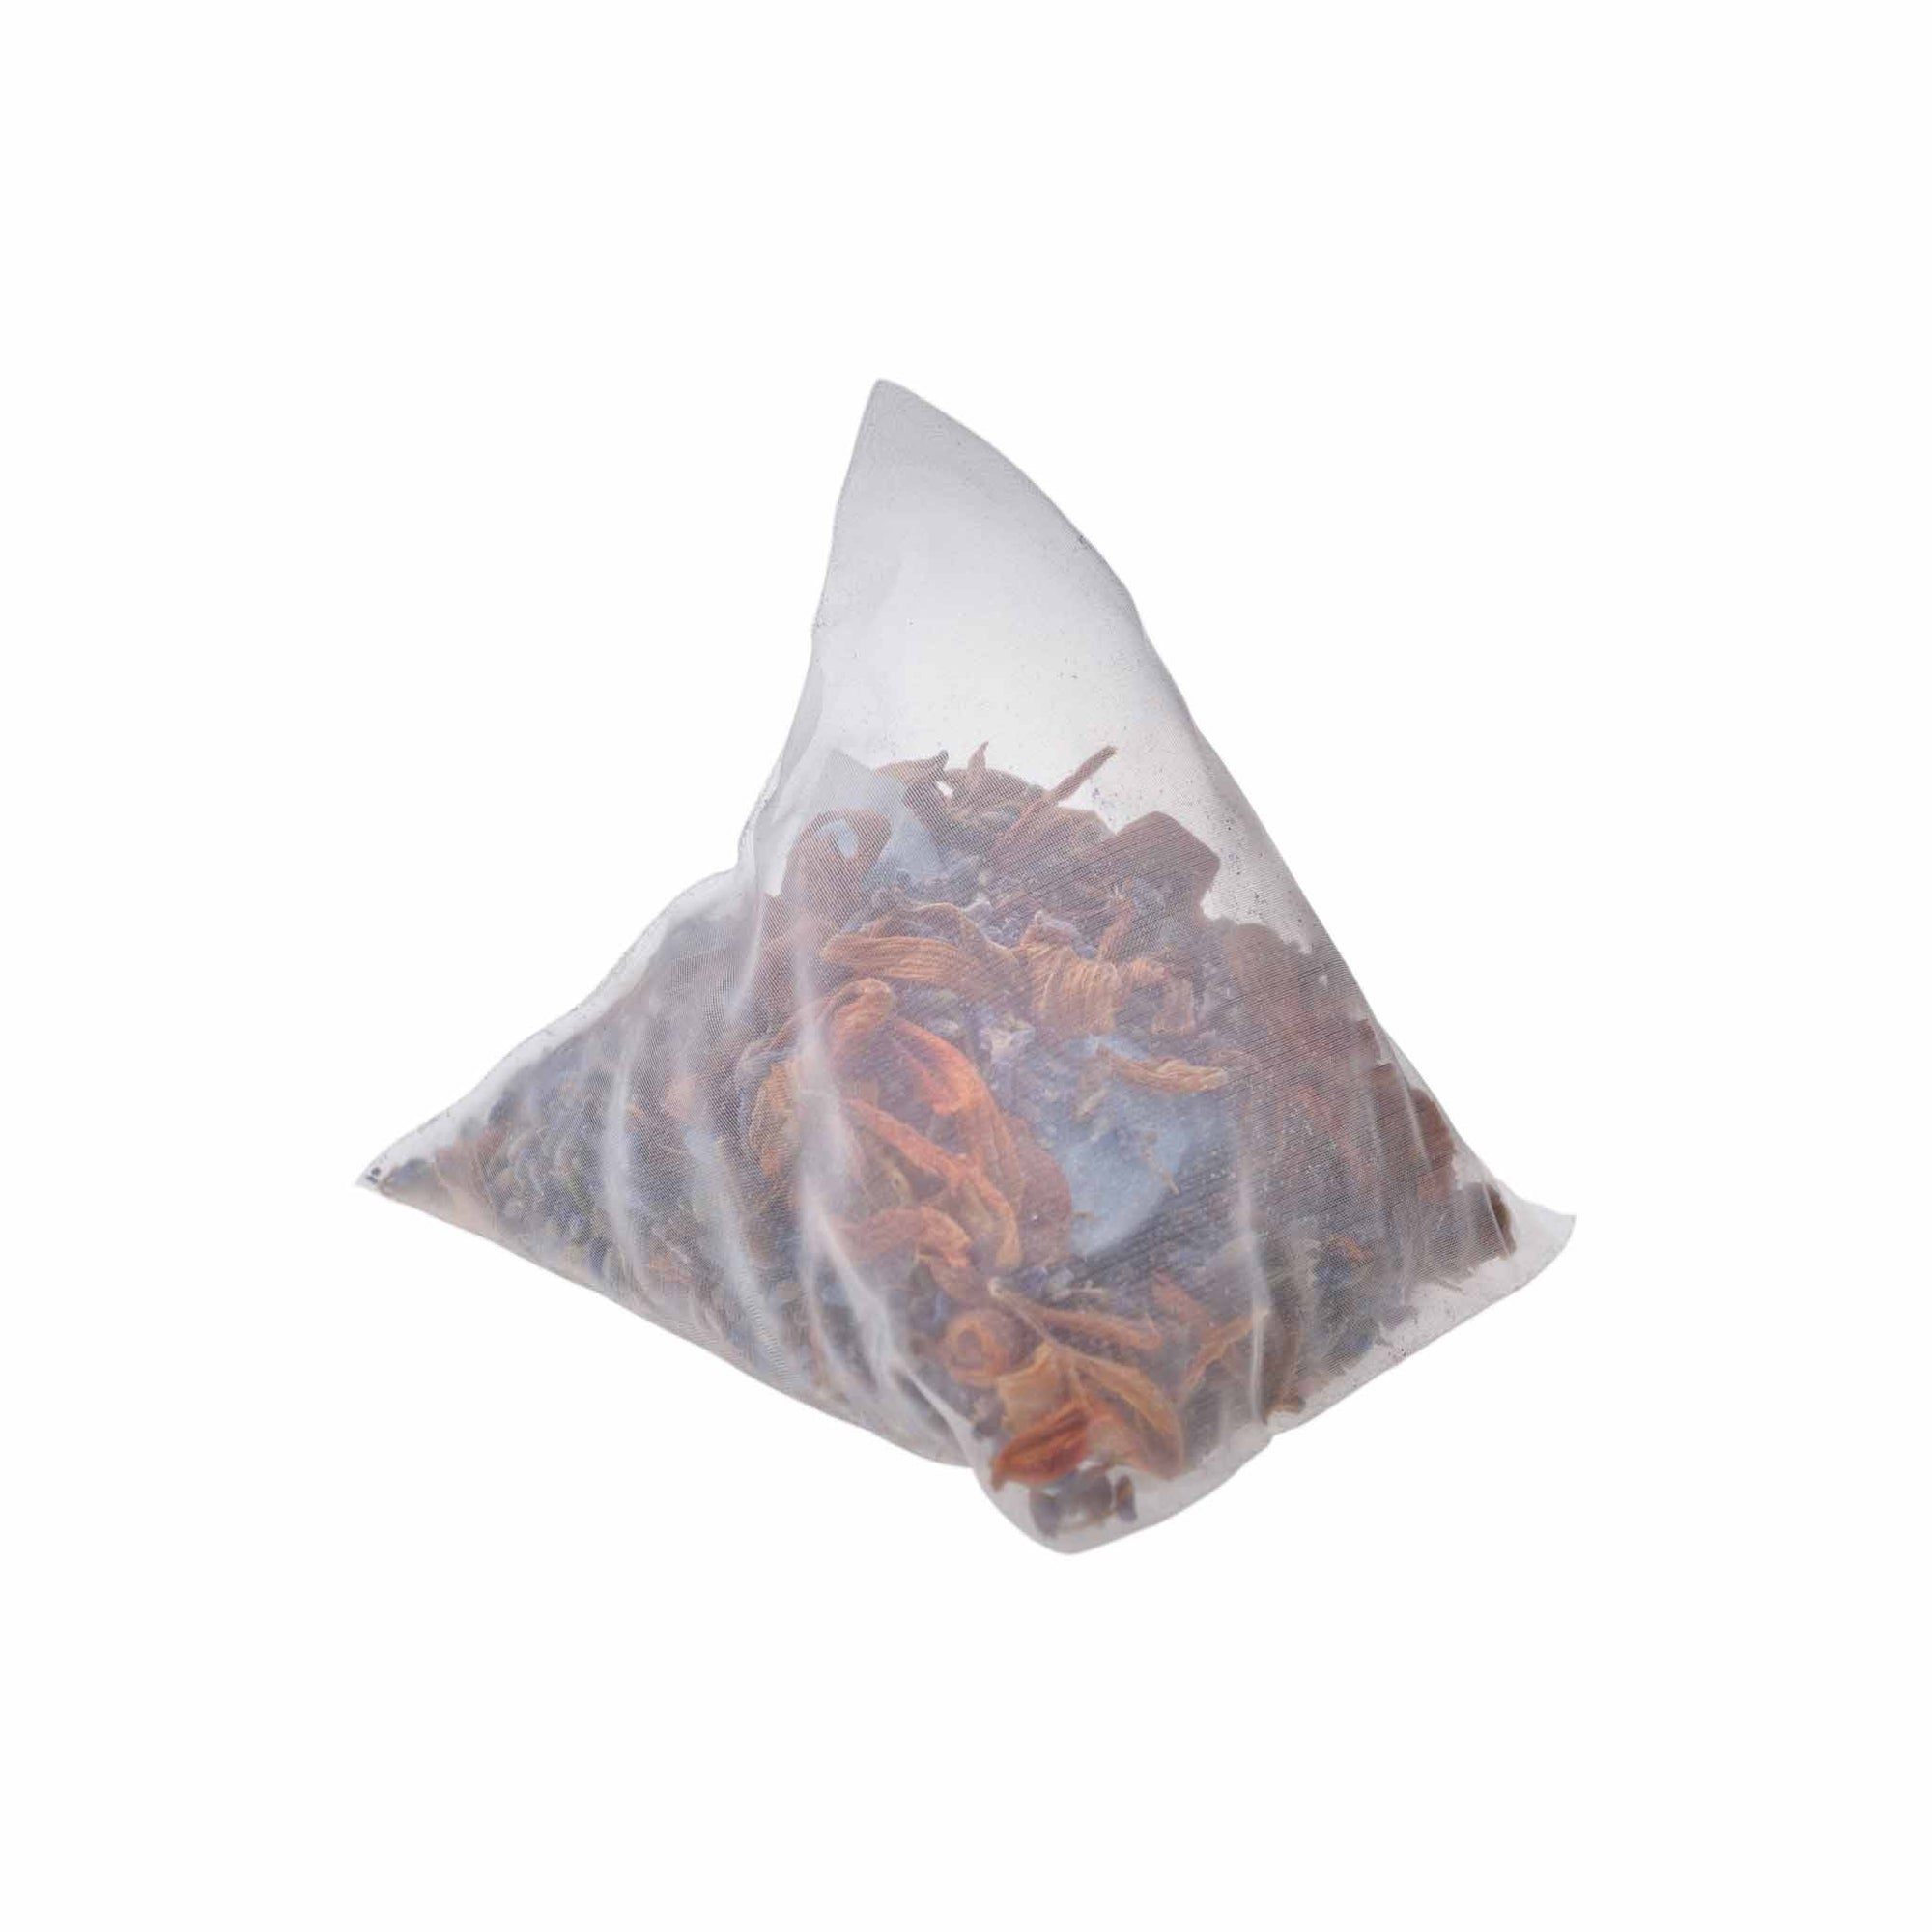 Teaposy flower tea bath with lavender, lily and lavender bath salt in a giant tea sachet